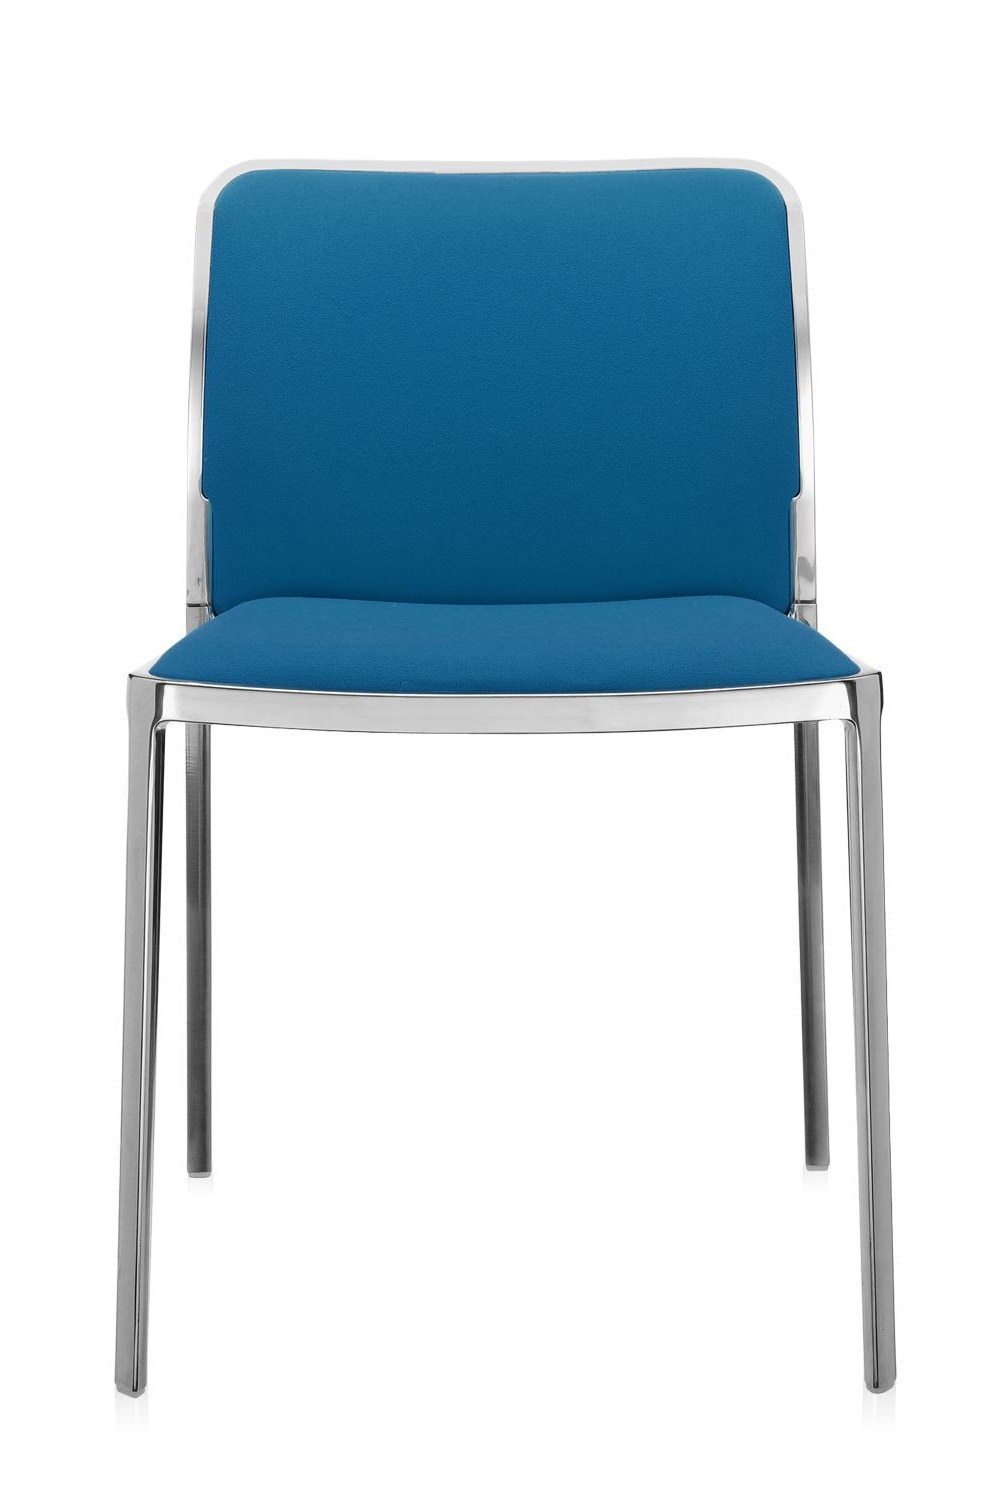 Kartell Audrey Soft Chair (Priced Each, Sold in Sets of 2)